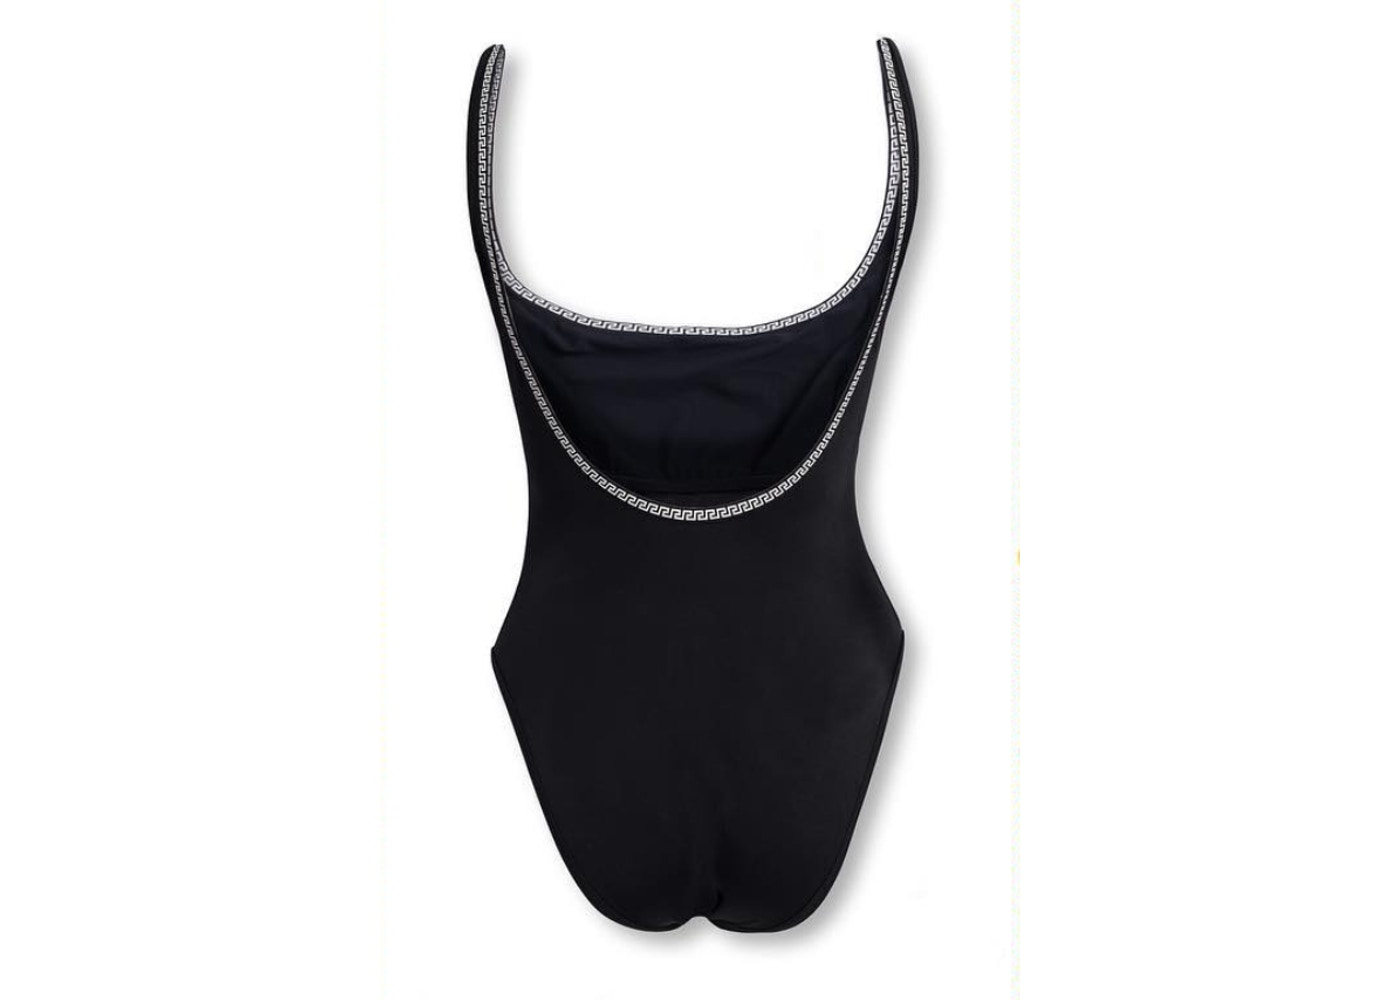 792c588ef6 Kith x Versace Women's One Piece Swimsuit Black - SS19